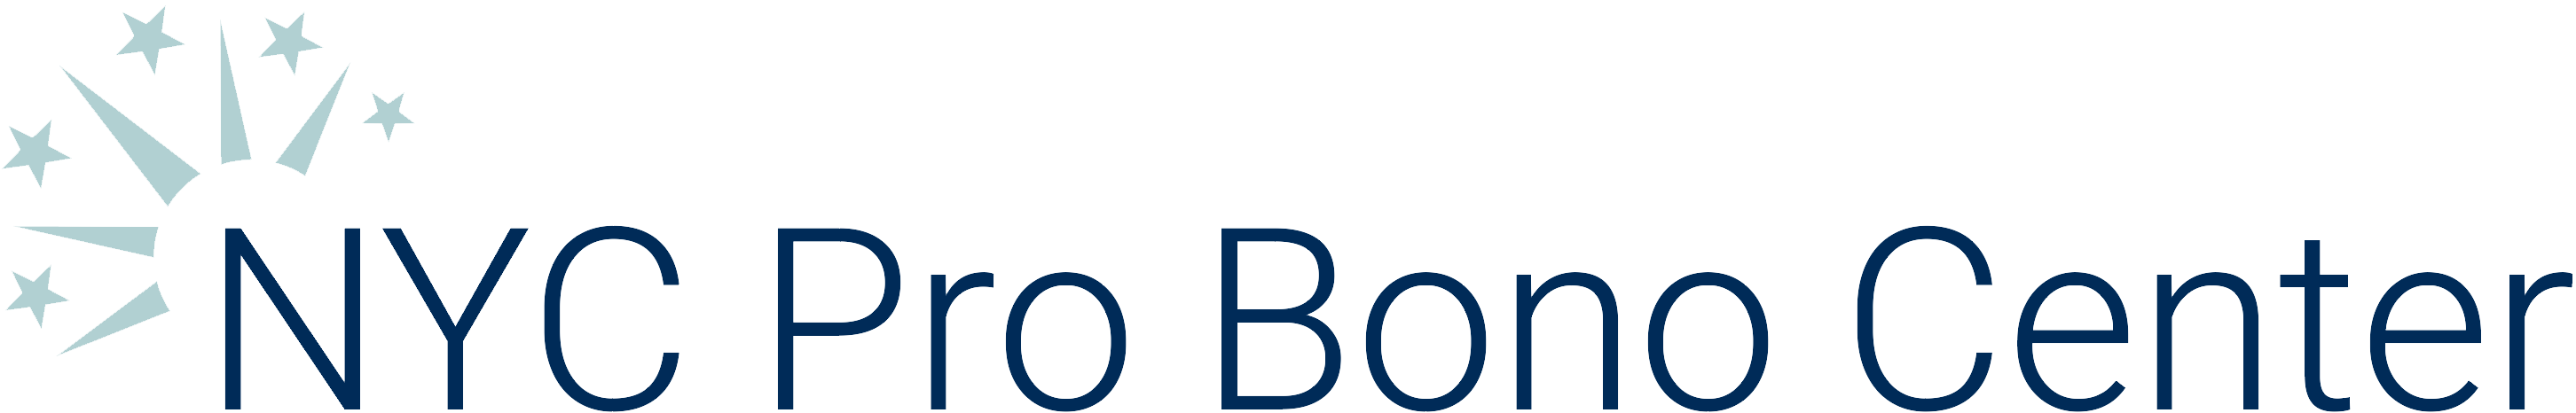 NYC Pro Bono Center logo